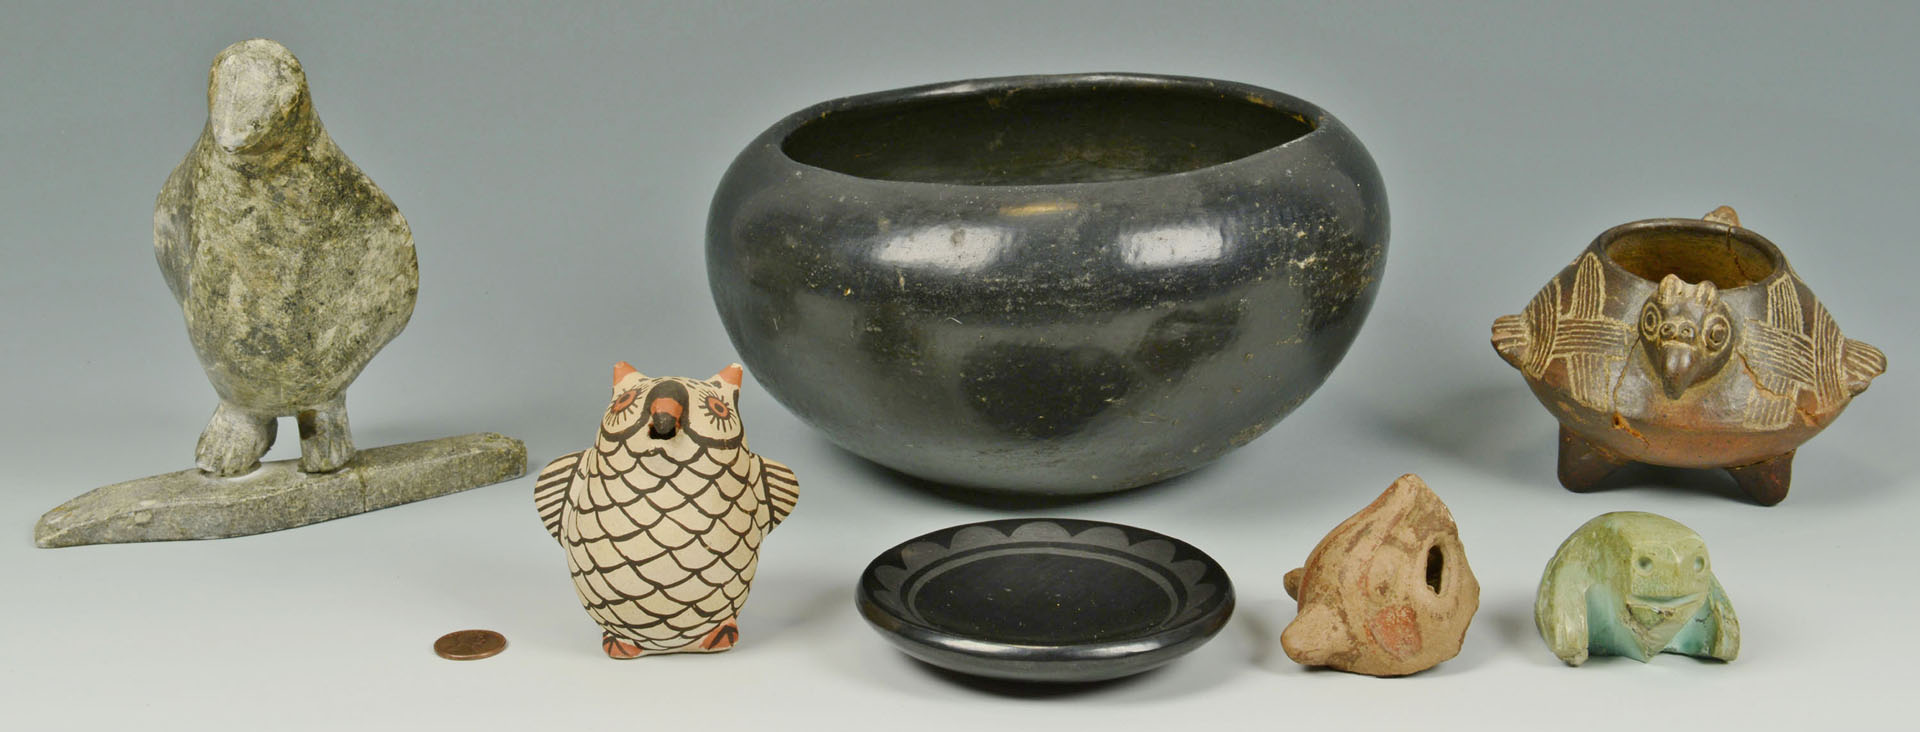 5 Native American objects, incl. Blue Corn, other